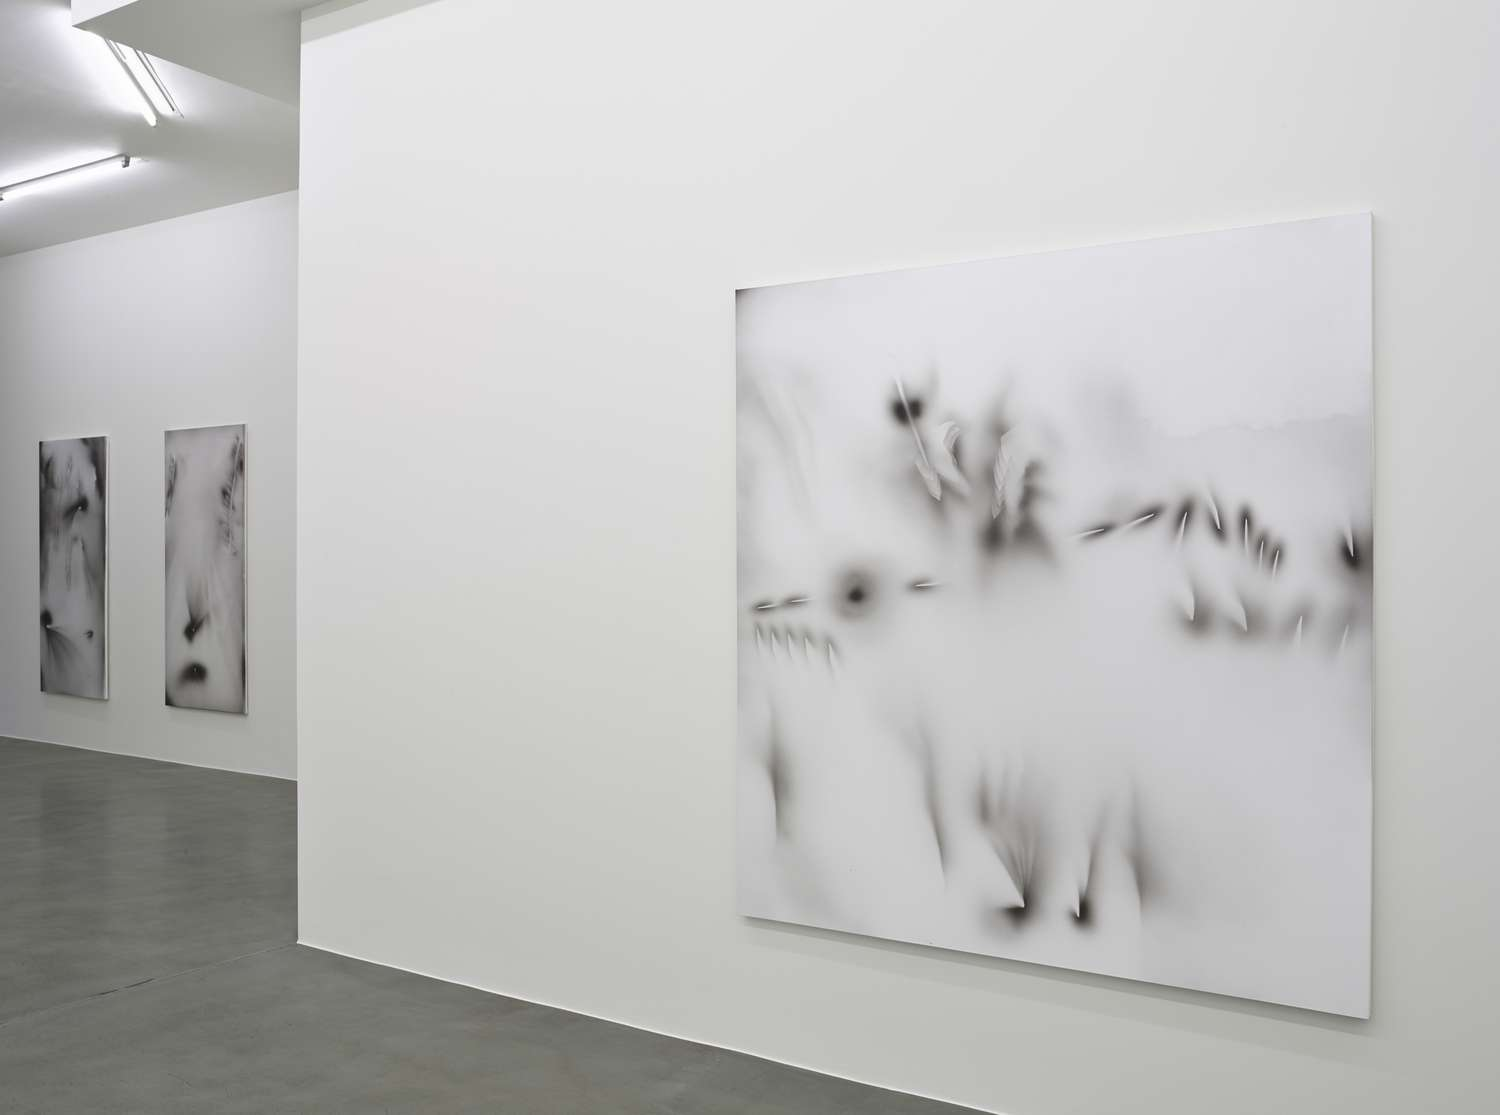 JZ_2016_SOME SCREEN MODS_Simon Lee Gallery, London_Installation View_P (8)